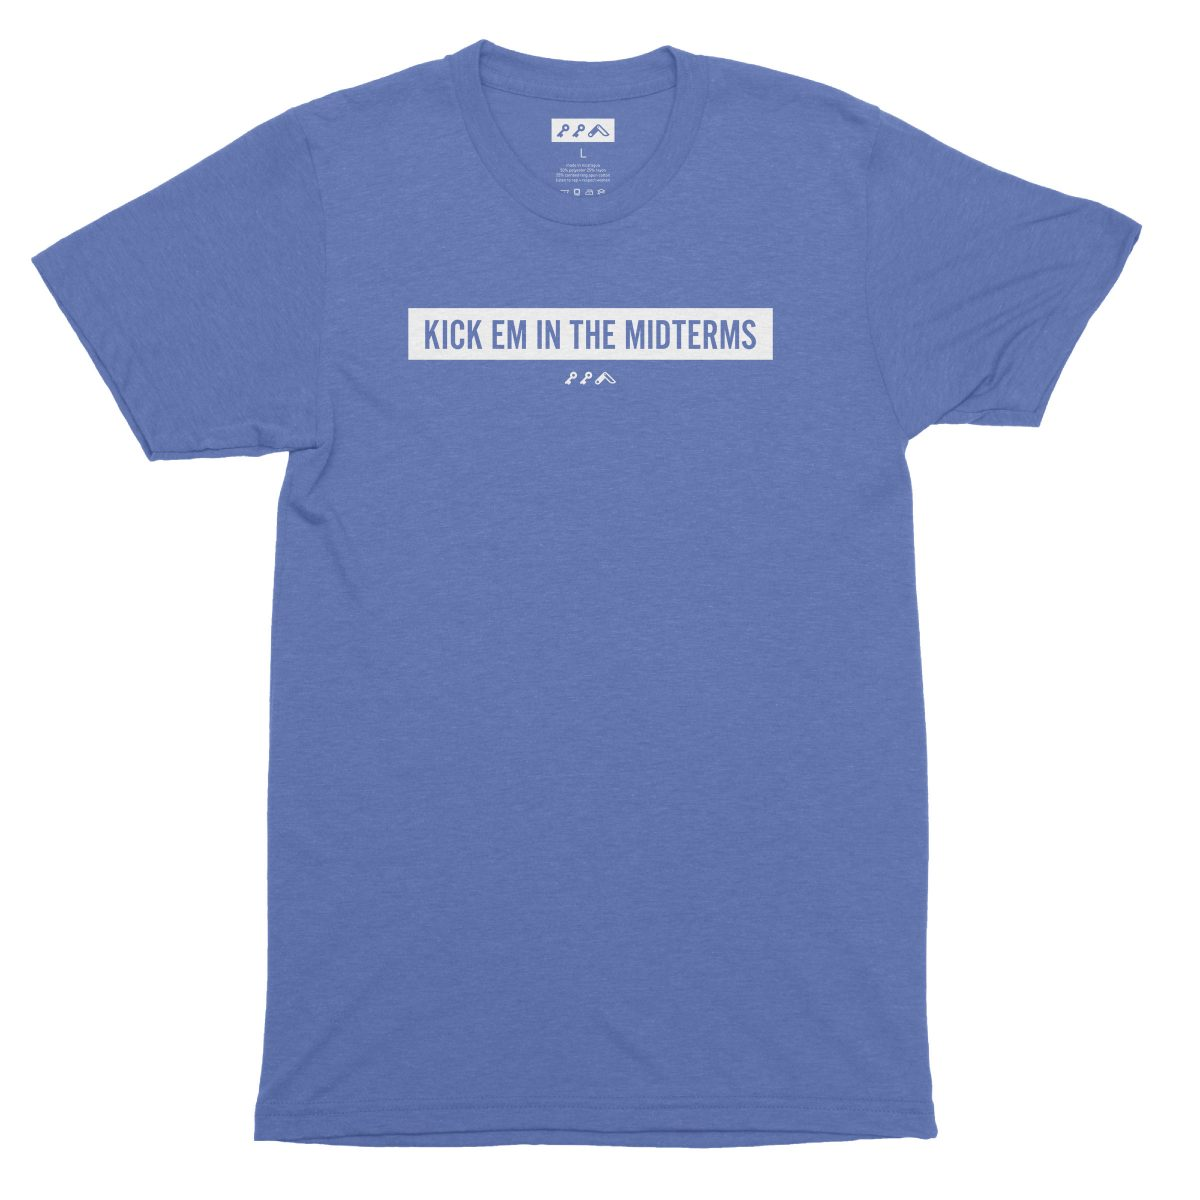 """""""KICK EM IN THE MIDTERMS"""" funny political t-shirt in blue"""